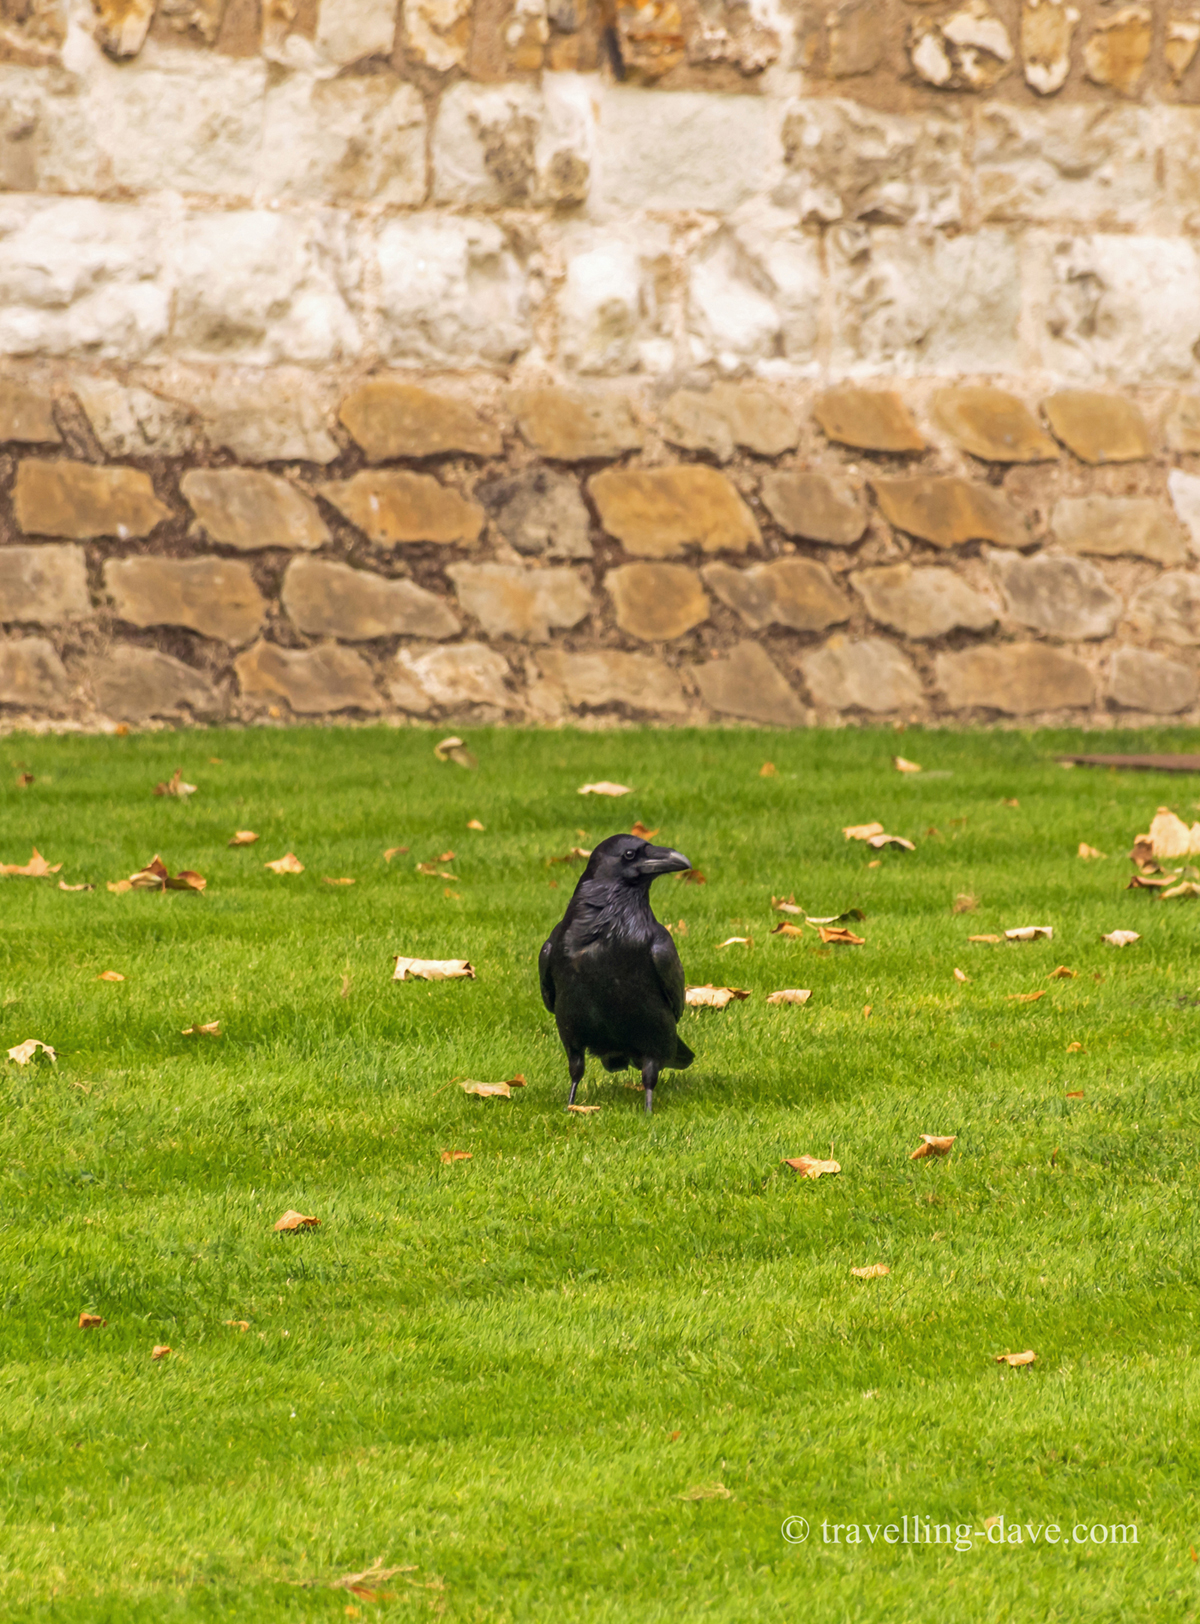 A raven in the grounds of the Tower of London